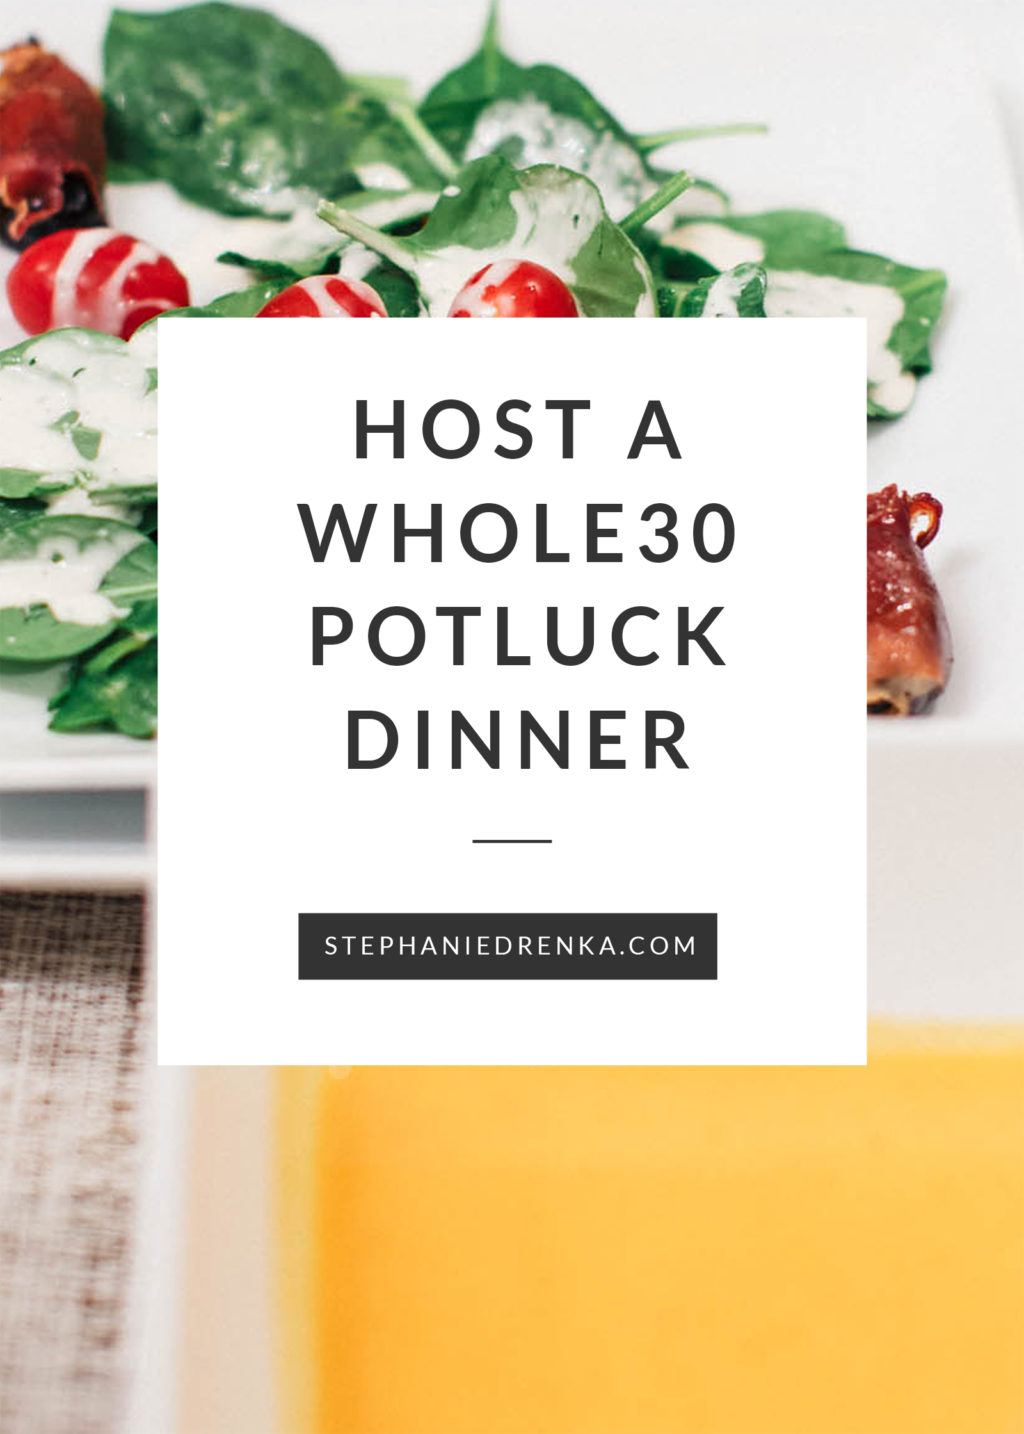 Host a #Whole30 Potluck Dinner with Friends to Share Recipes and Celebrate the Whole30 Challenge!